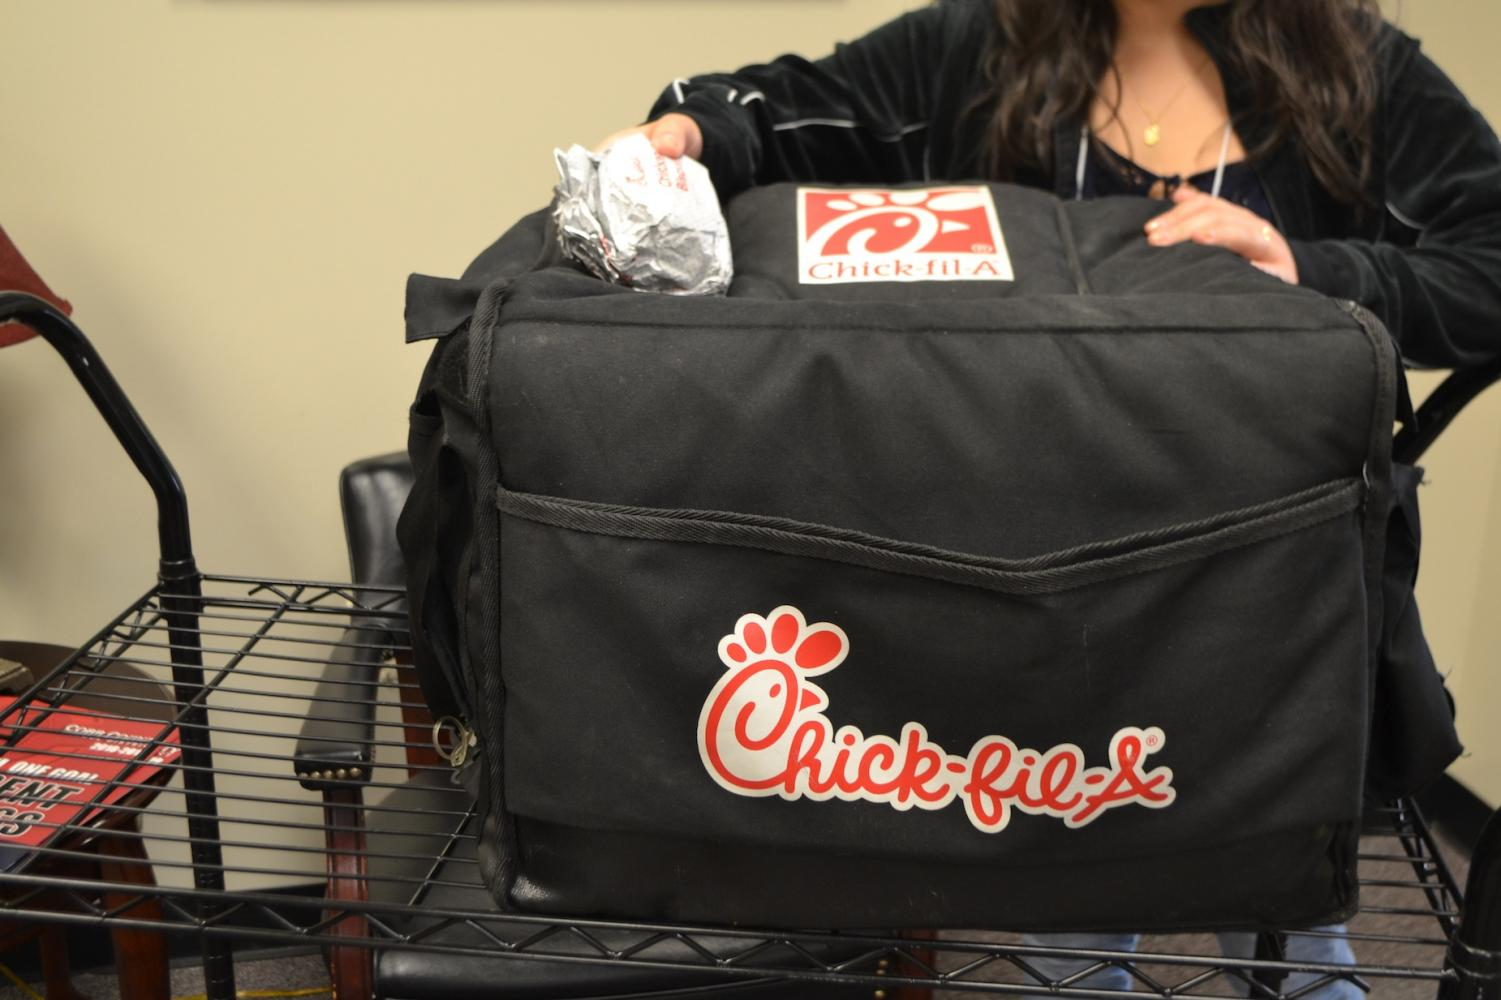 """The first full week of school after summer means the start of the sale of Chick-fil-A chicken biscuits outside of Admin One. From now until the end of the school year, the delicious smell of bread and chicken fill the front of the school as students line up to purchase a biscuit for $3 before running off to their first period class. """"Chicken biscuits allow the school to make money and fundraise while also providing something that everyone loves: Chick-fil-A,"""" senior Harrison Haley said."""